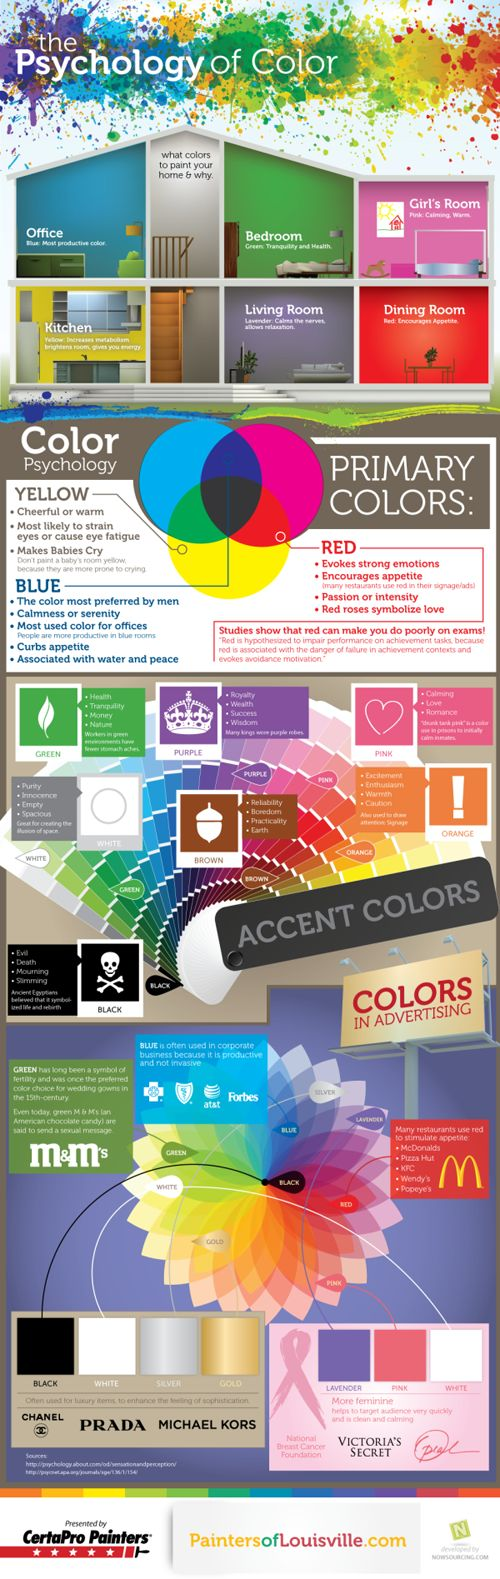 The-Psychology-of-Color-Infographic